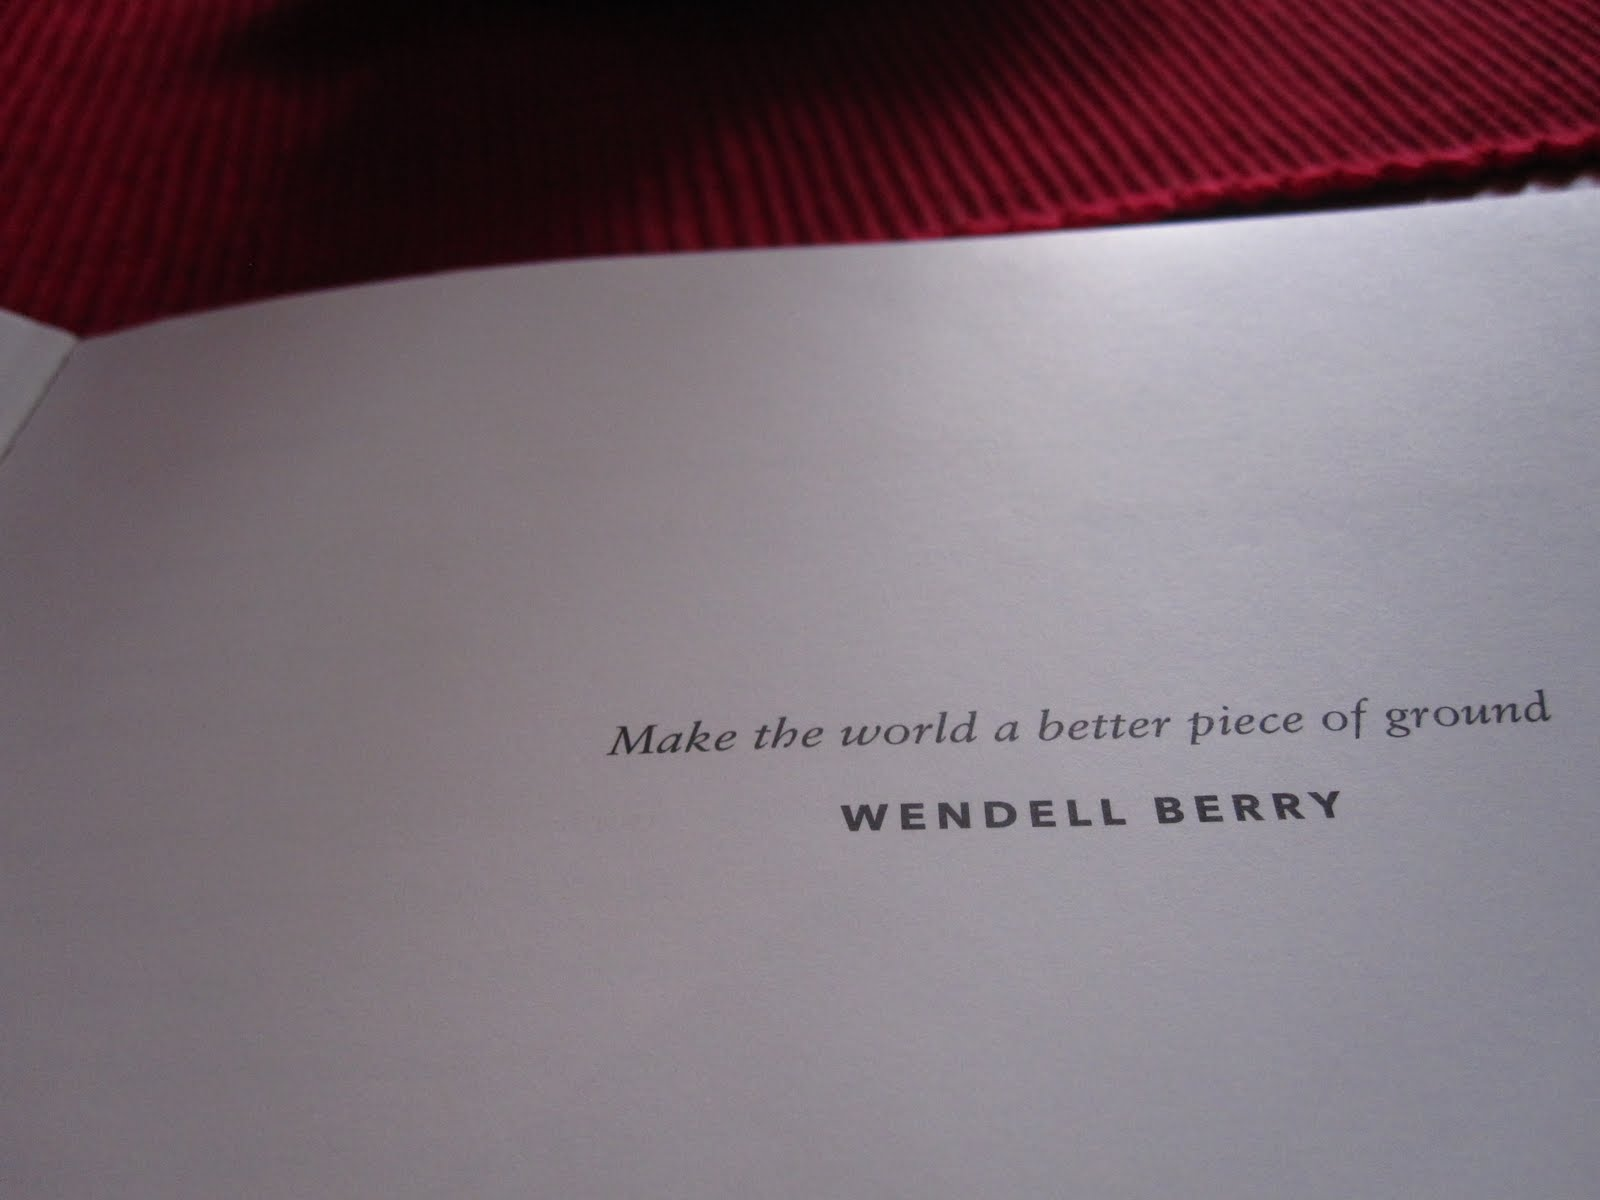 Wendell Berry's quote #3